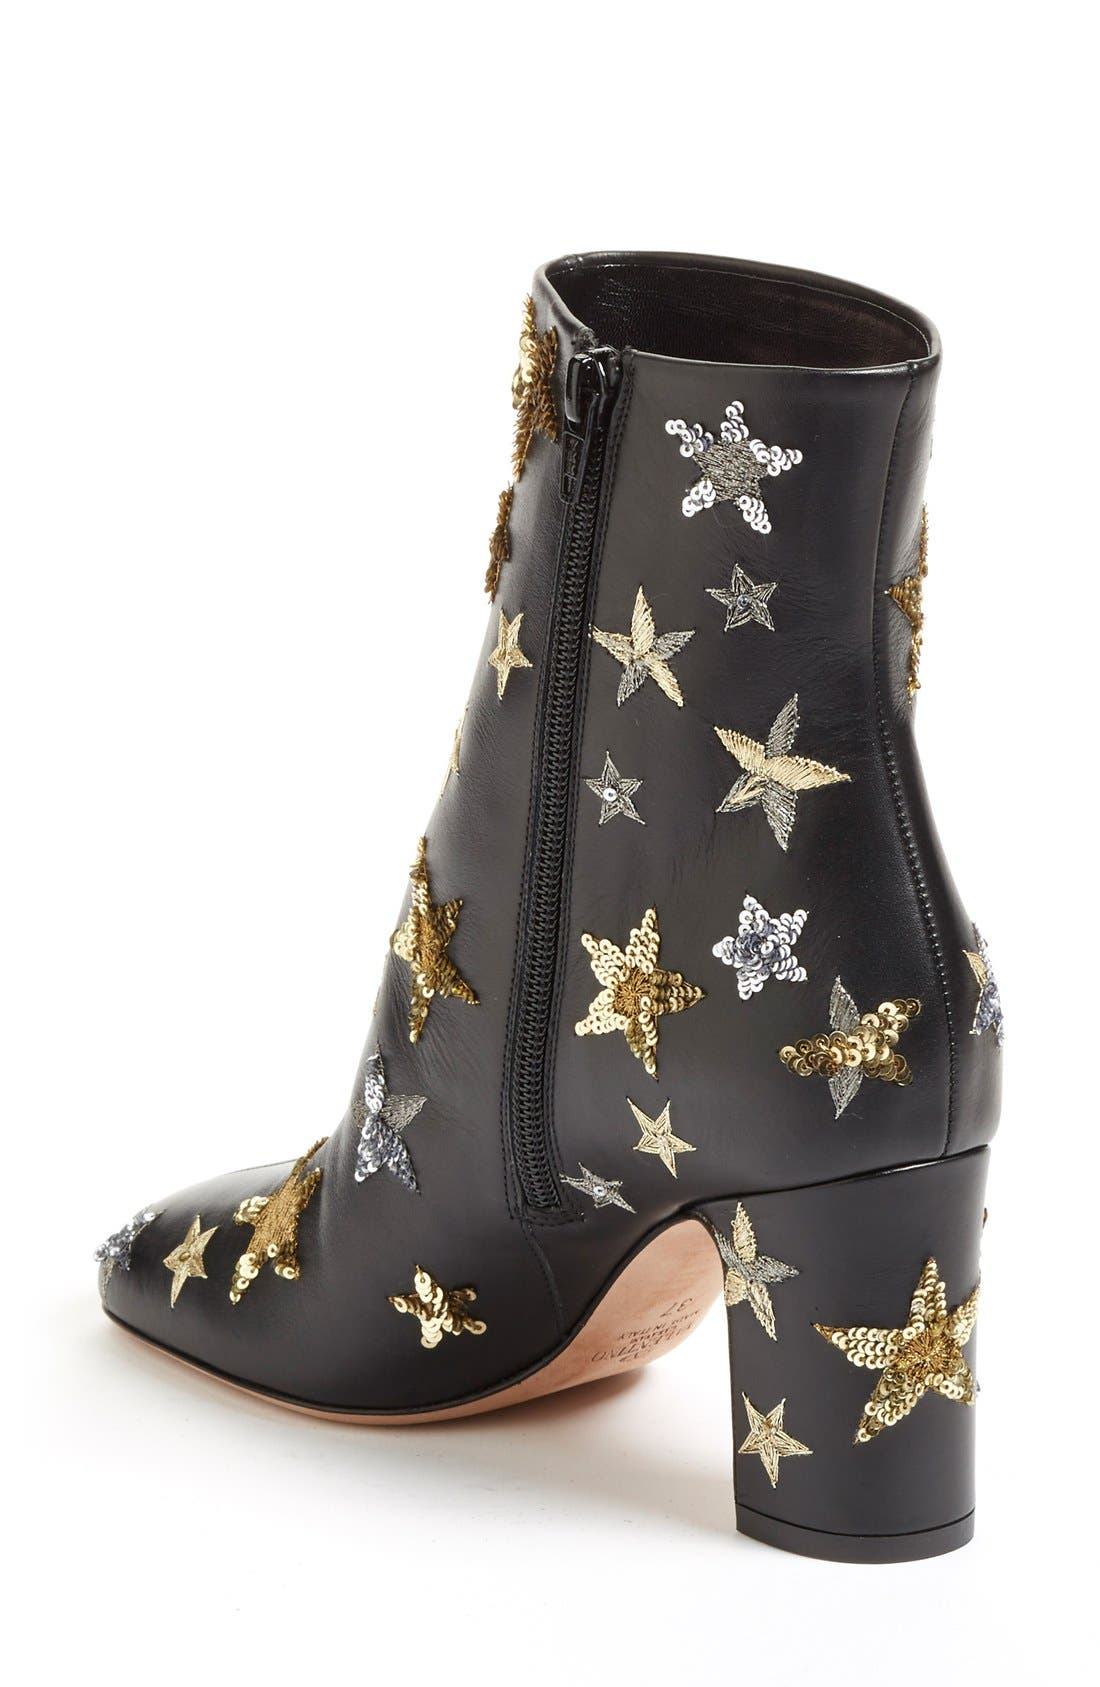 VALENTINO,                             'Star Studded' Bootie,                             Alternate thumbnail 3, color,                             002